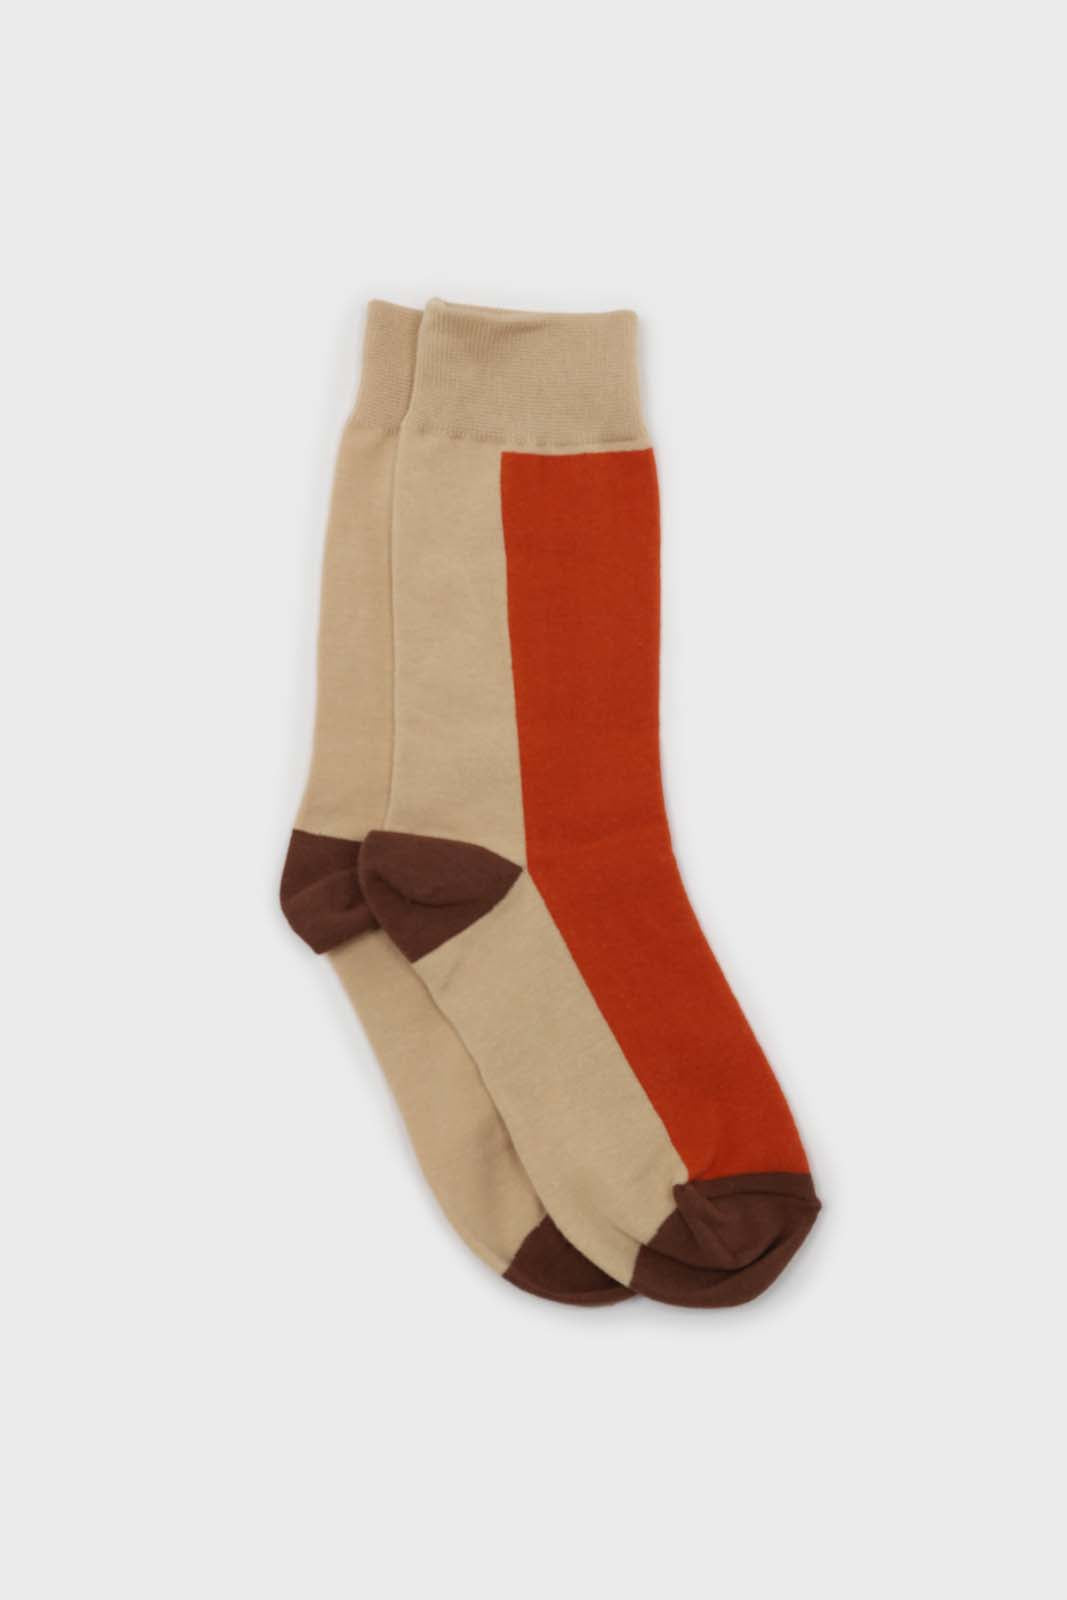 Orange and beige thick vertical strip socks1sx